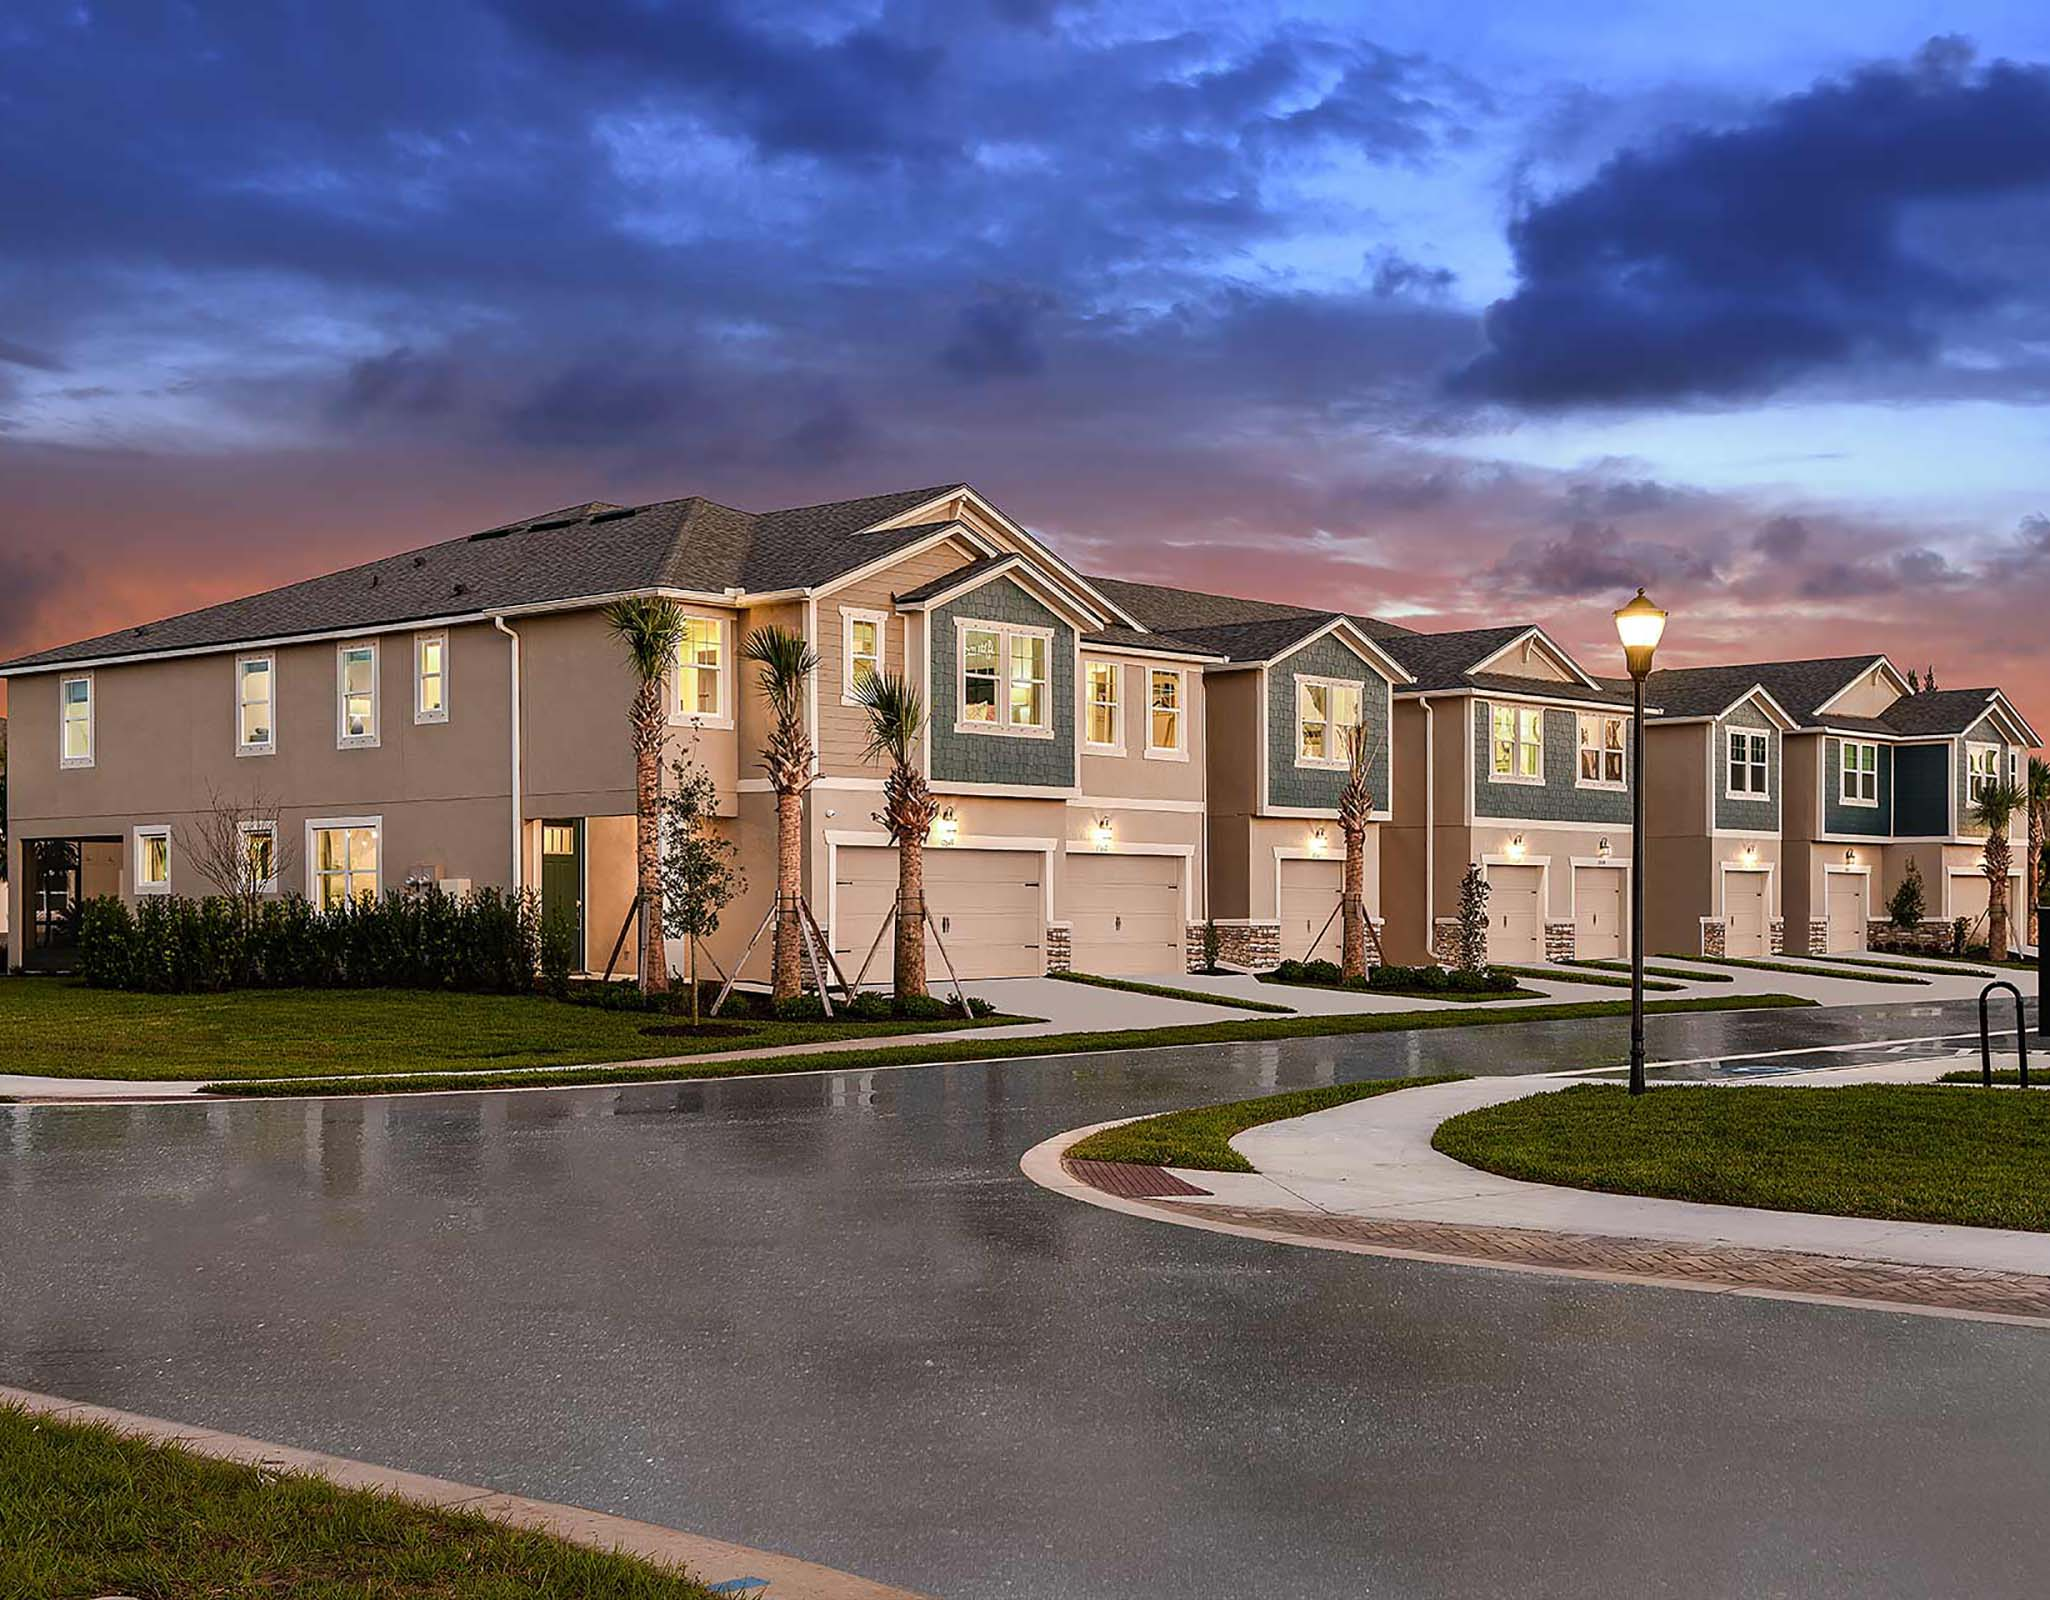 Avea Pointe TownHomes in Lutz Florida by Mattamy Homes